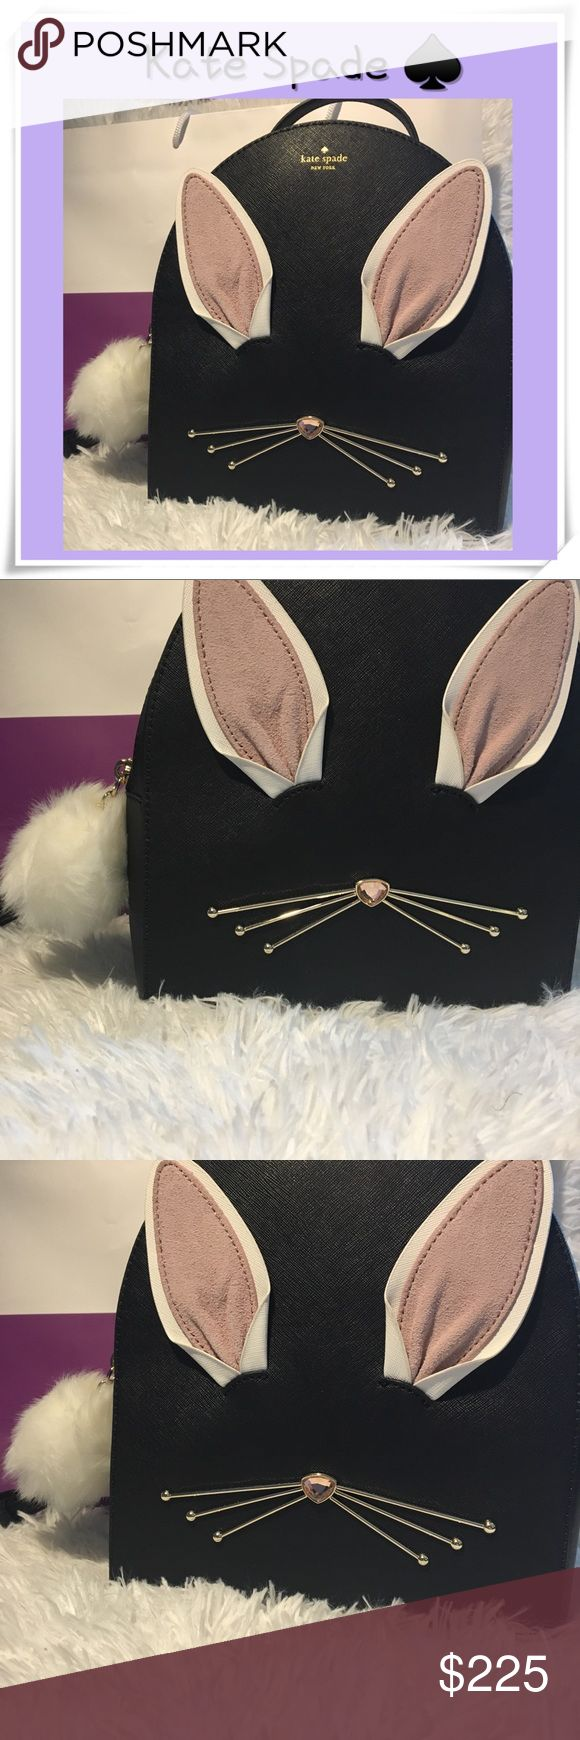 Kate Spade Hop To It Sammi Backpack Absolutely adorable Kate Spade Sammi Backpack - adorable rabbit face with bunny tail zipper. Has lavender inside ears. Comes from a smoke-free home. Please see my other items. Bundle & save! kate spade Bags Backpacks